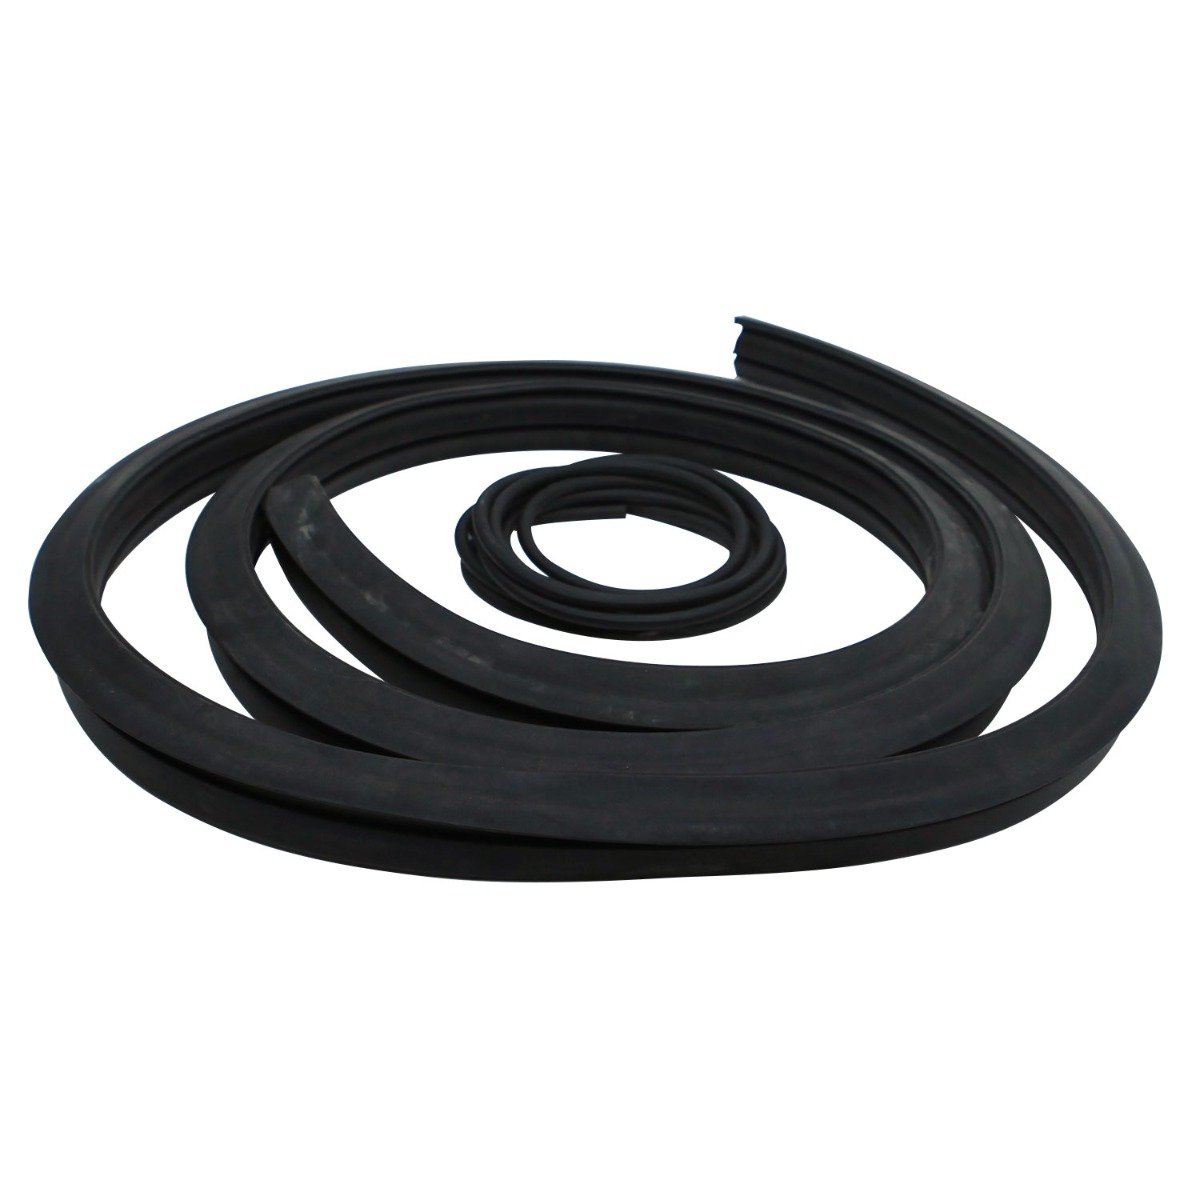 Rubber Seal and Cord 6513152 Compatible with Bobcat Skid Steer Loader 450 453 463 540 542 543 553 641 642 643 645 653 741 742 743 751 753 763 773 843 853 863 864 873 883 953 963 7753